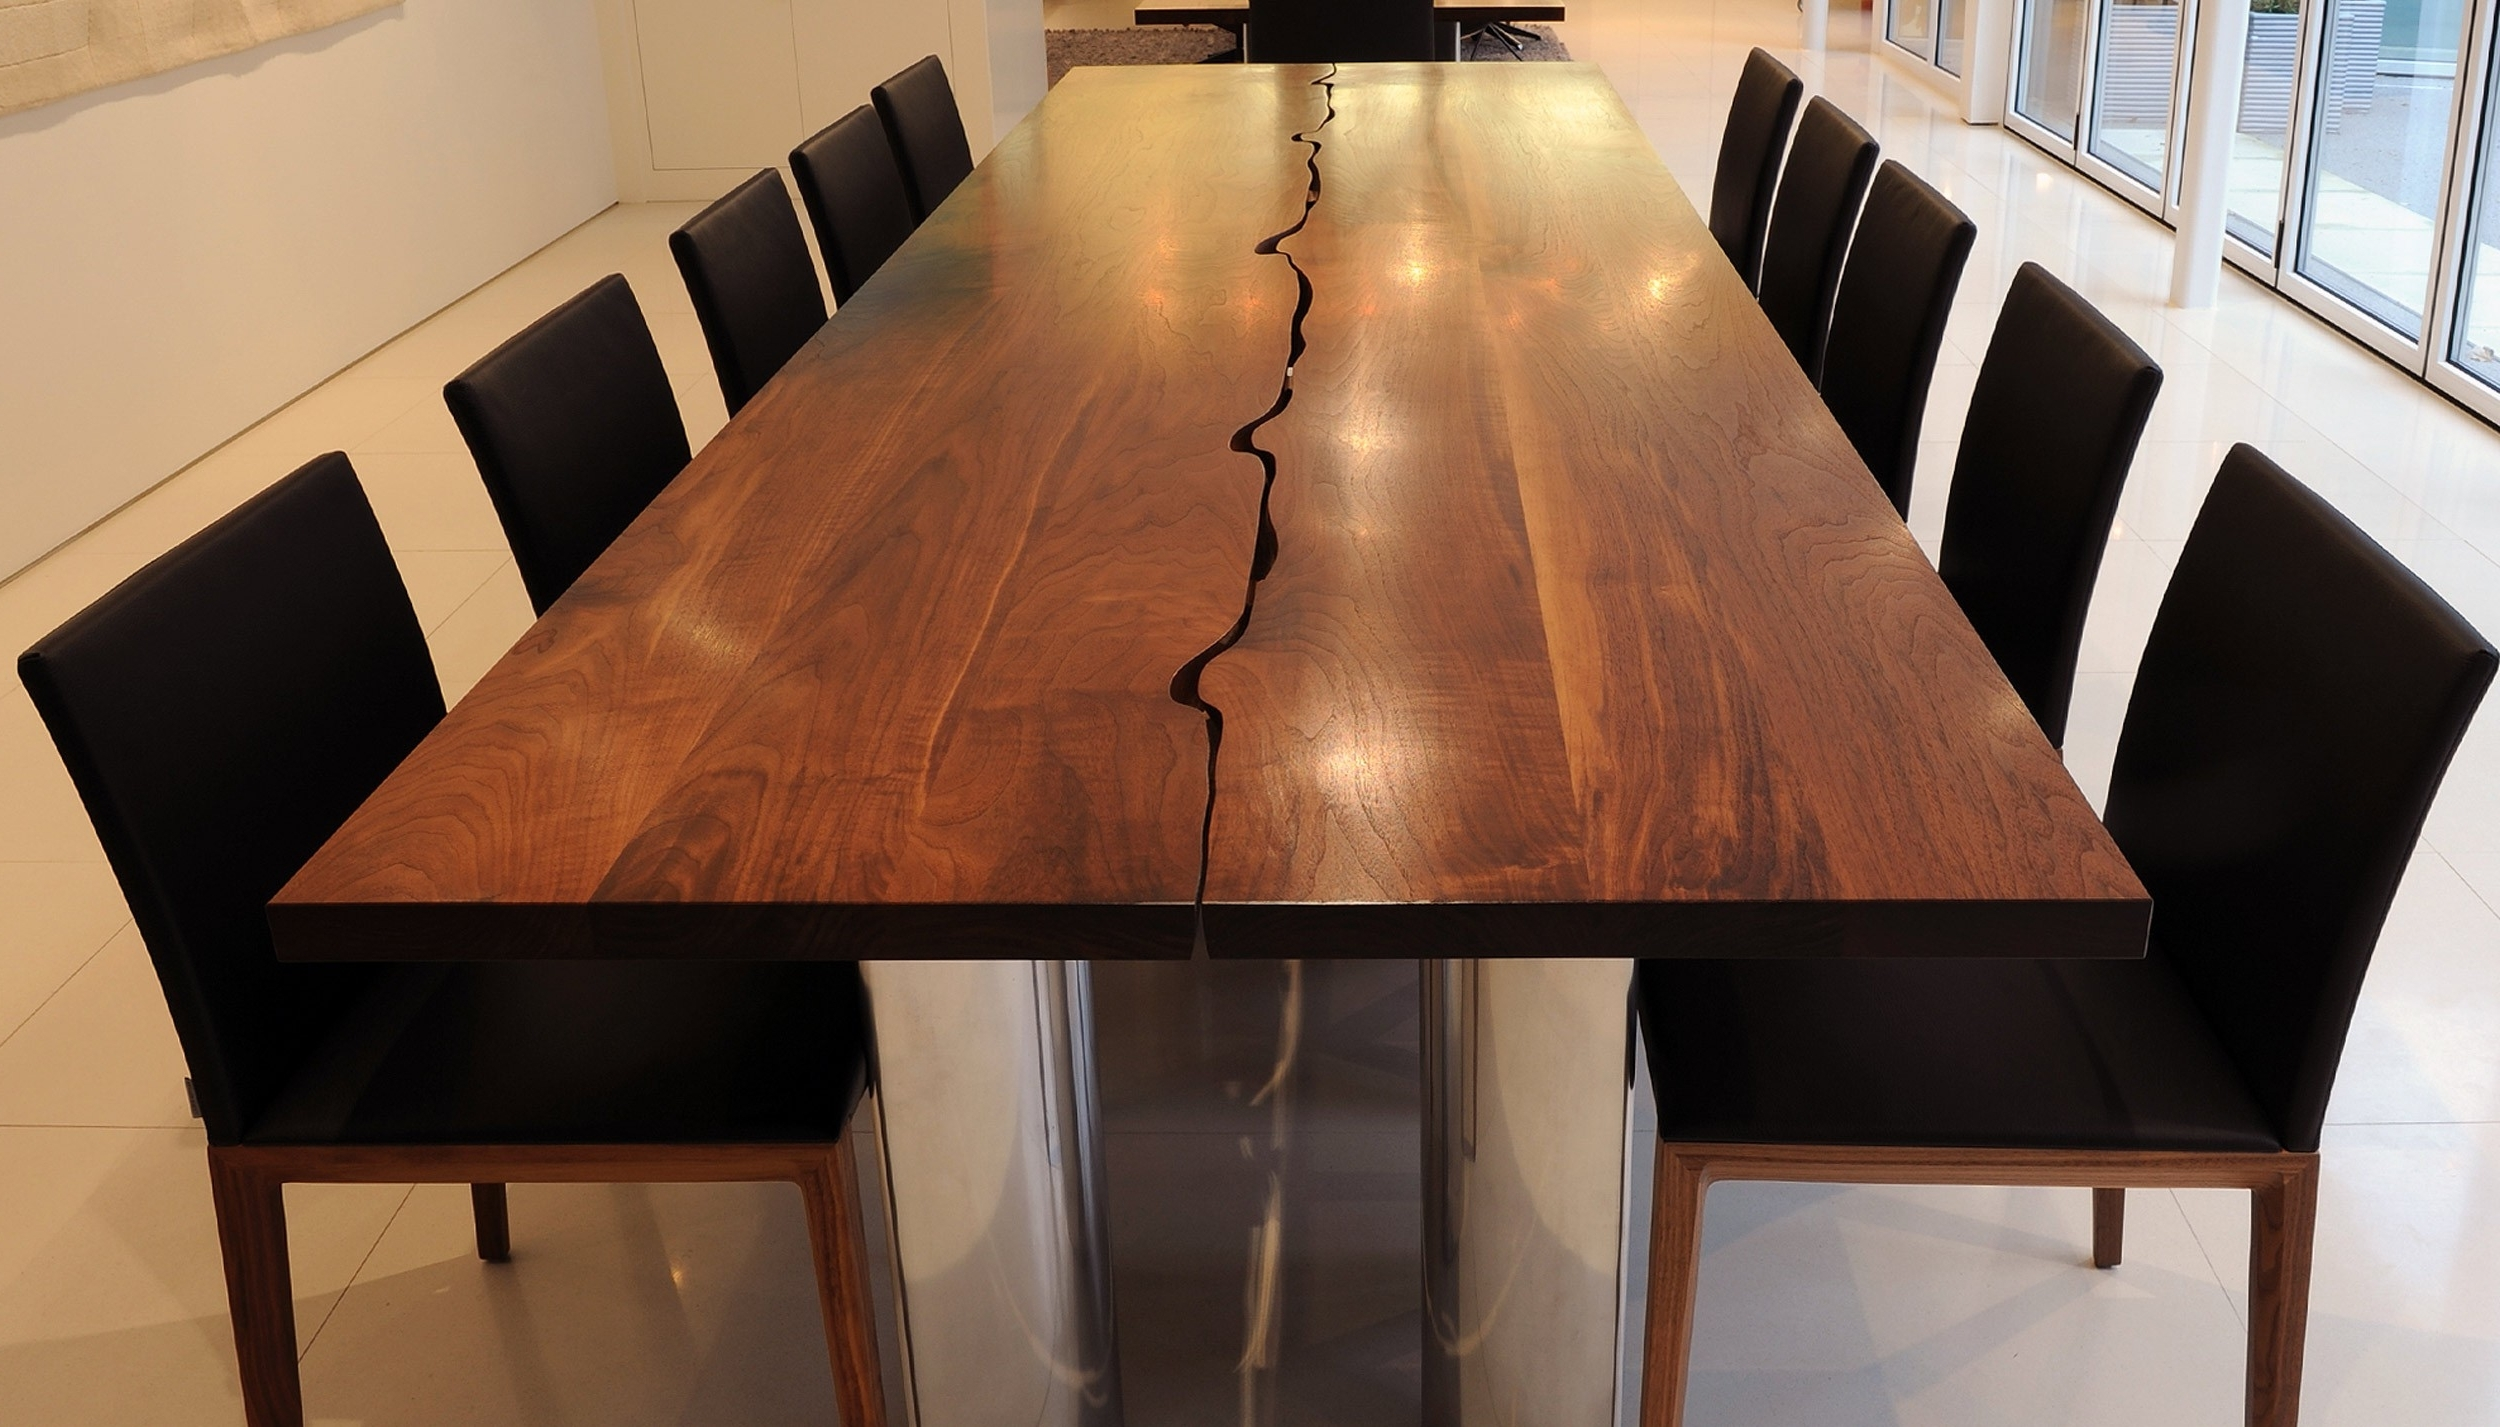 Edmonton Dining Tables Within Most Recent Rustic Kitchen Tables Fascinating Kitchen Tables Edmonton – Home (View 5 of 25)